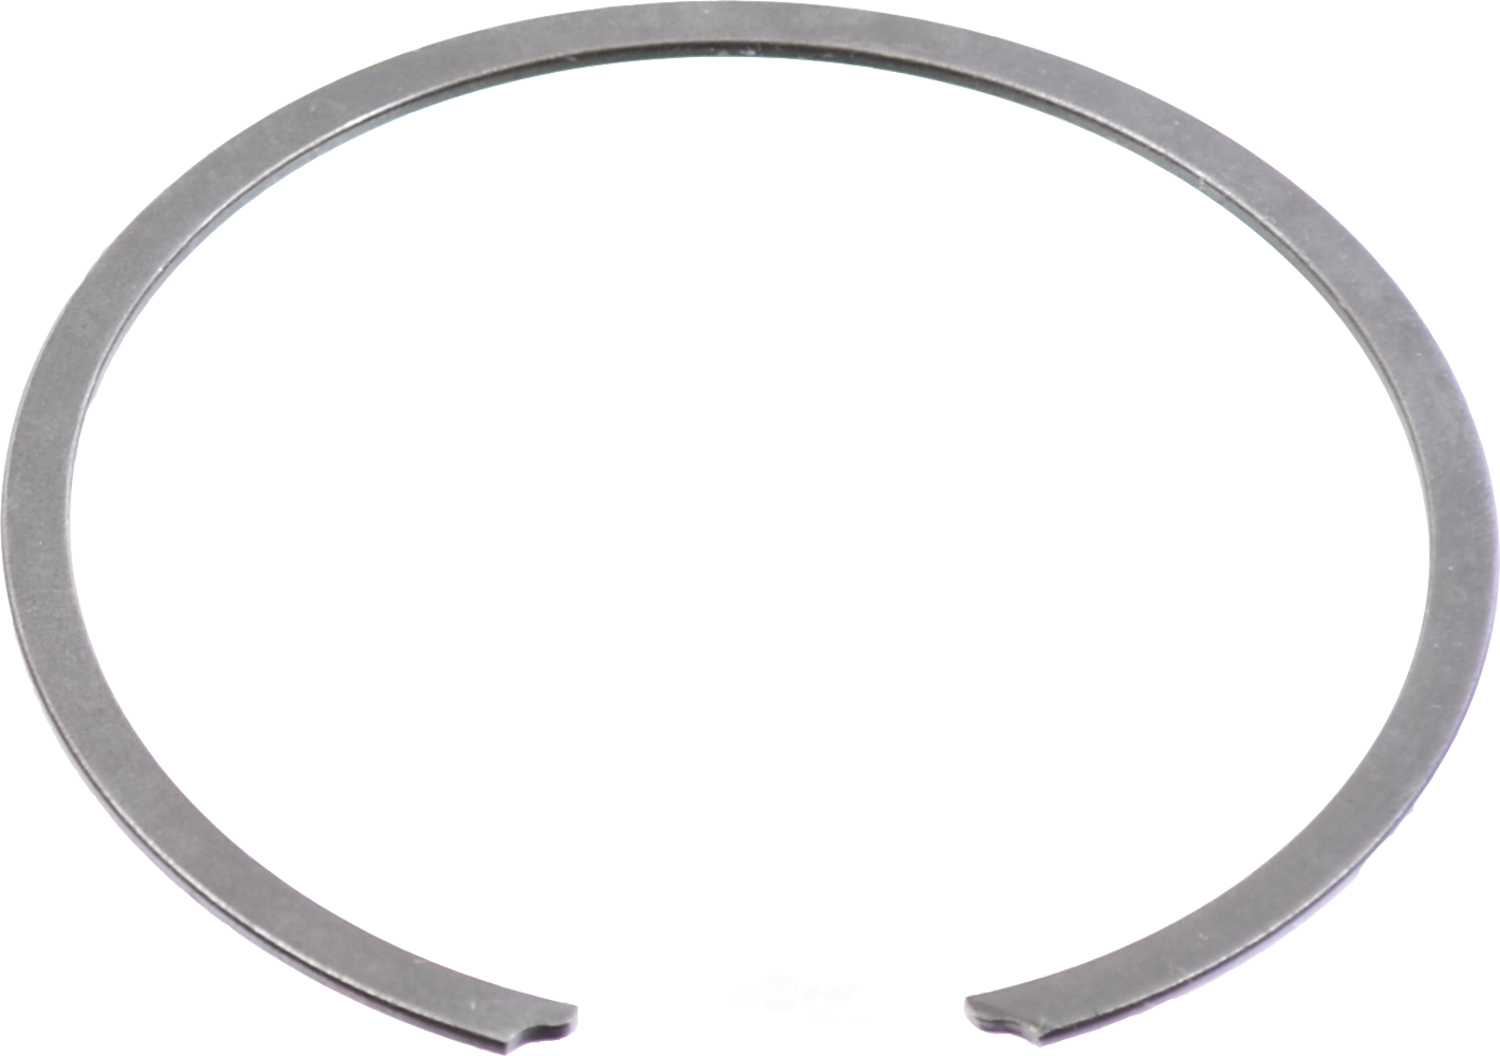 SKF (CHICAGO RAWHIDE) - Wheel Bearing Retaining Ring - SKF CIR115